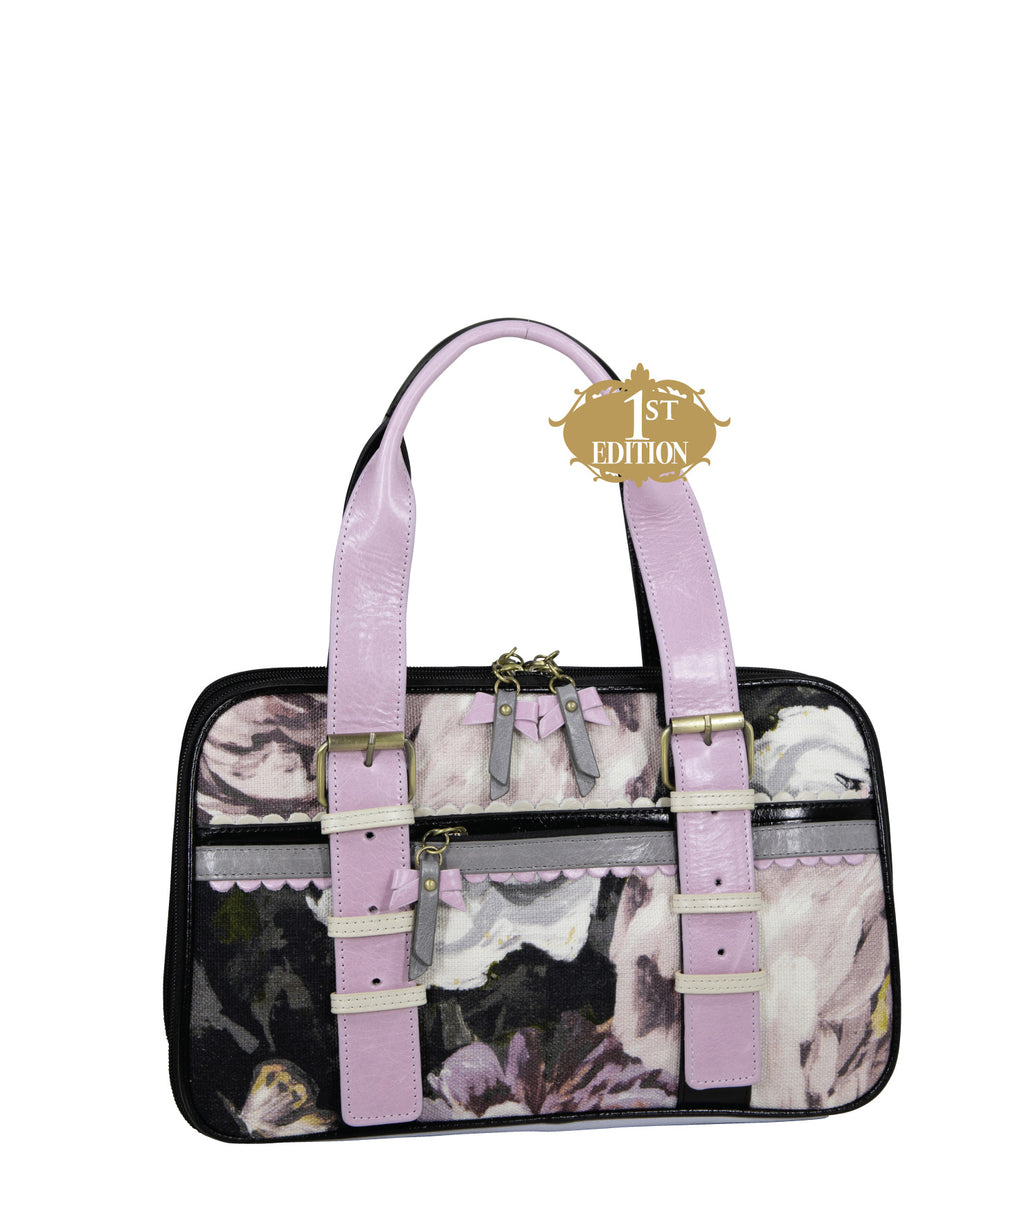 DITA Carry All - Garden of Eden - 1st Edition